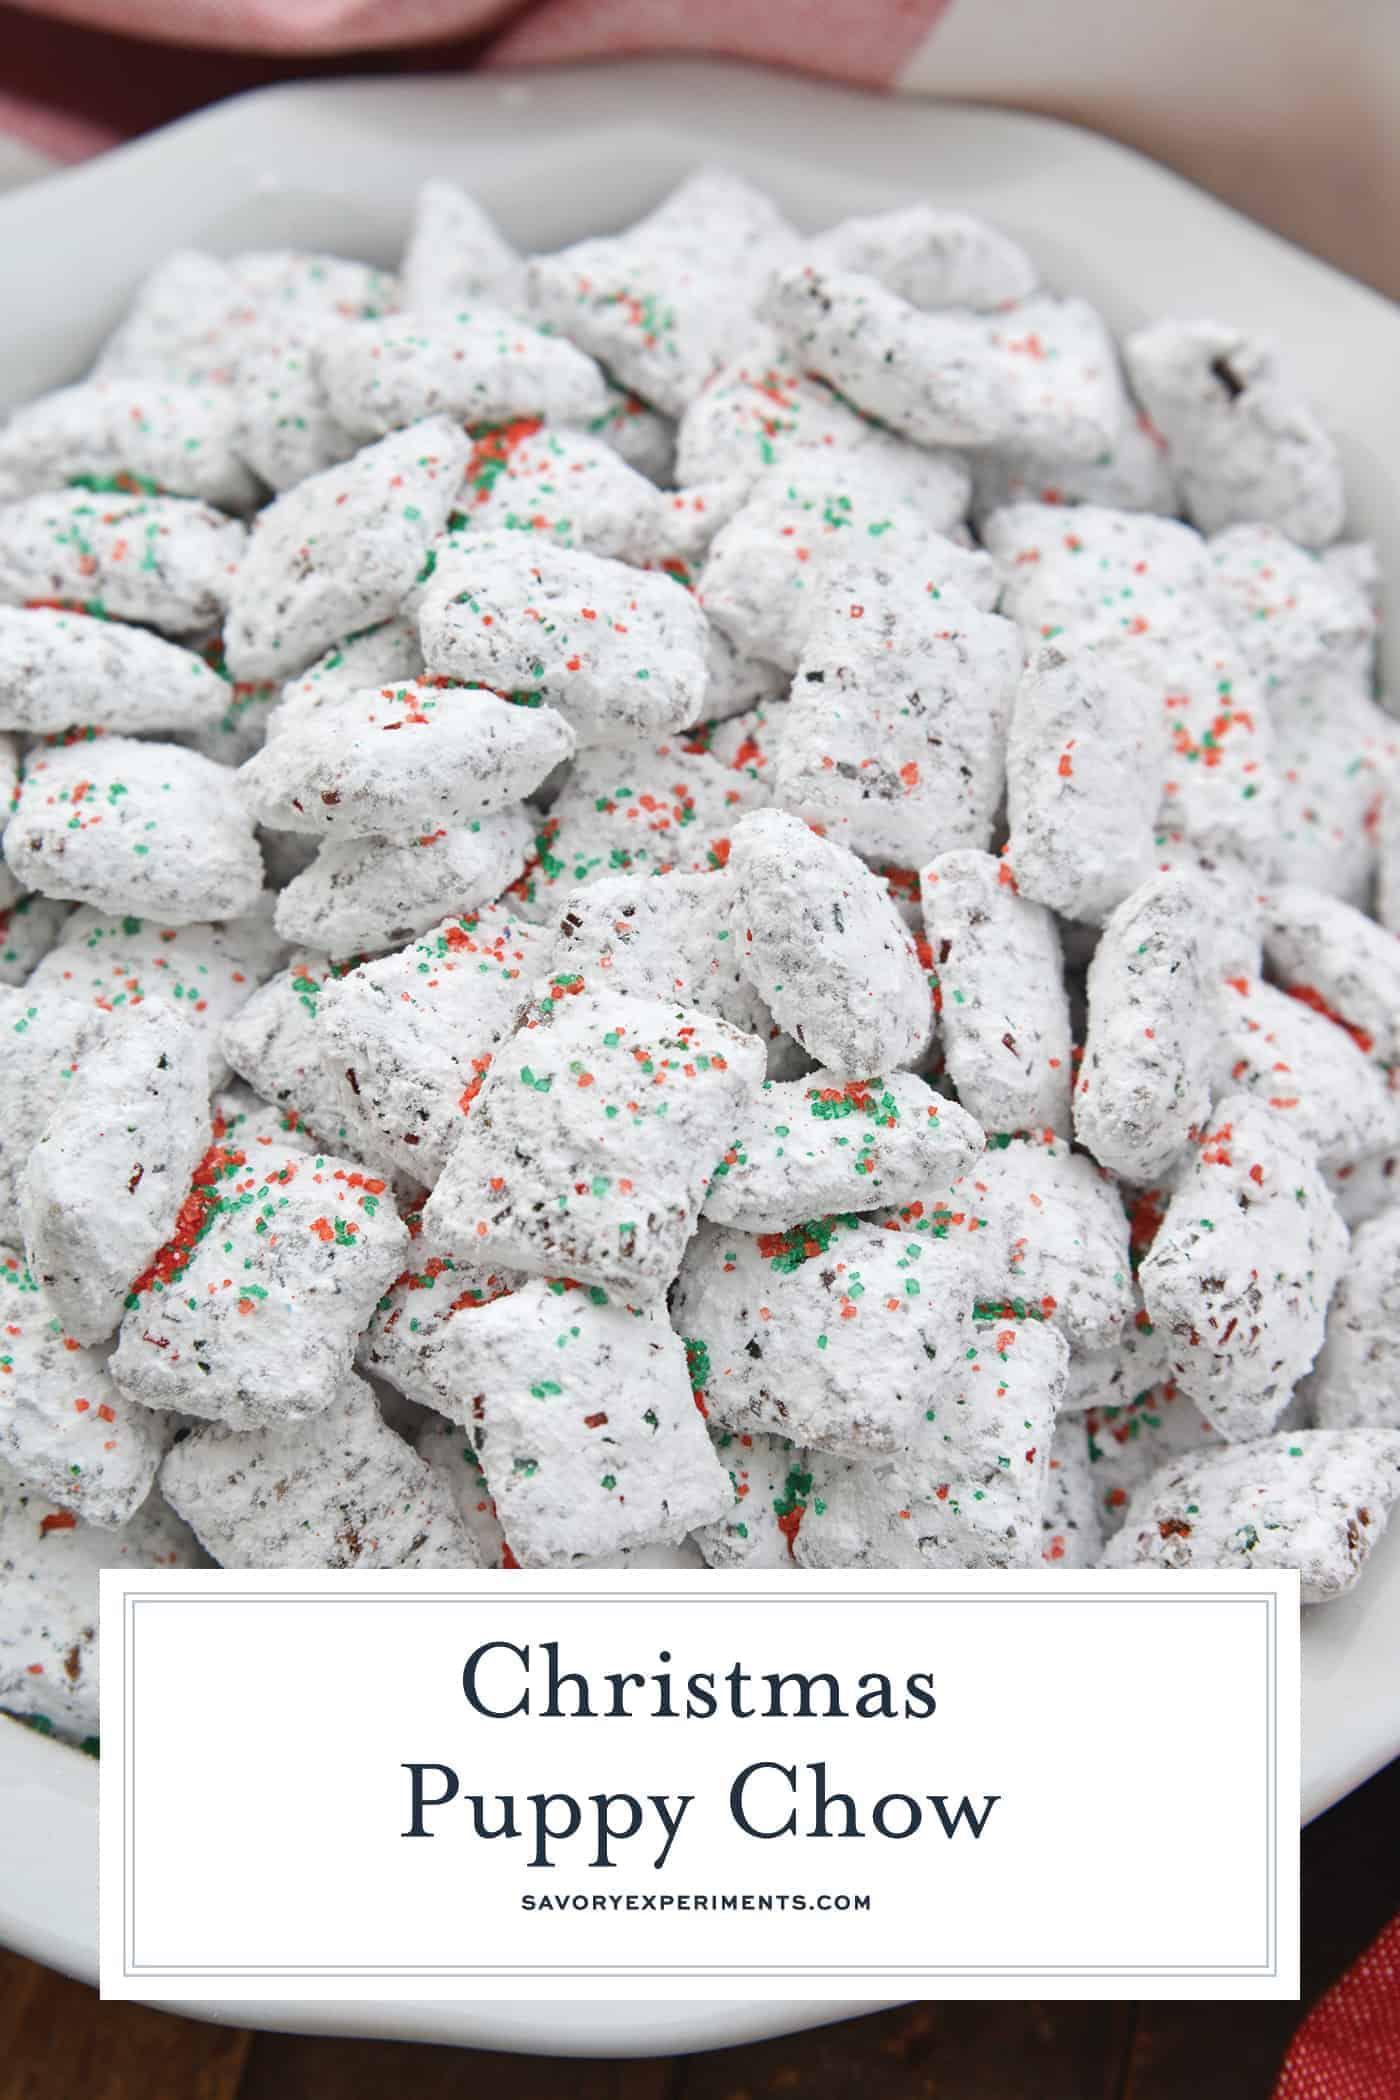 Christmas Puppy Chow transforms a traditional muddy buddy recipe into a festive Reindeer Chow mix! The perfect no-bake dessert for any party or event. #puppychow #reindeerchow #muddybuddy www.savoryexperiments.com